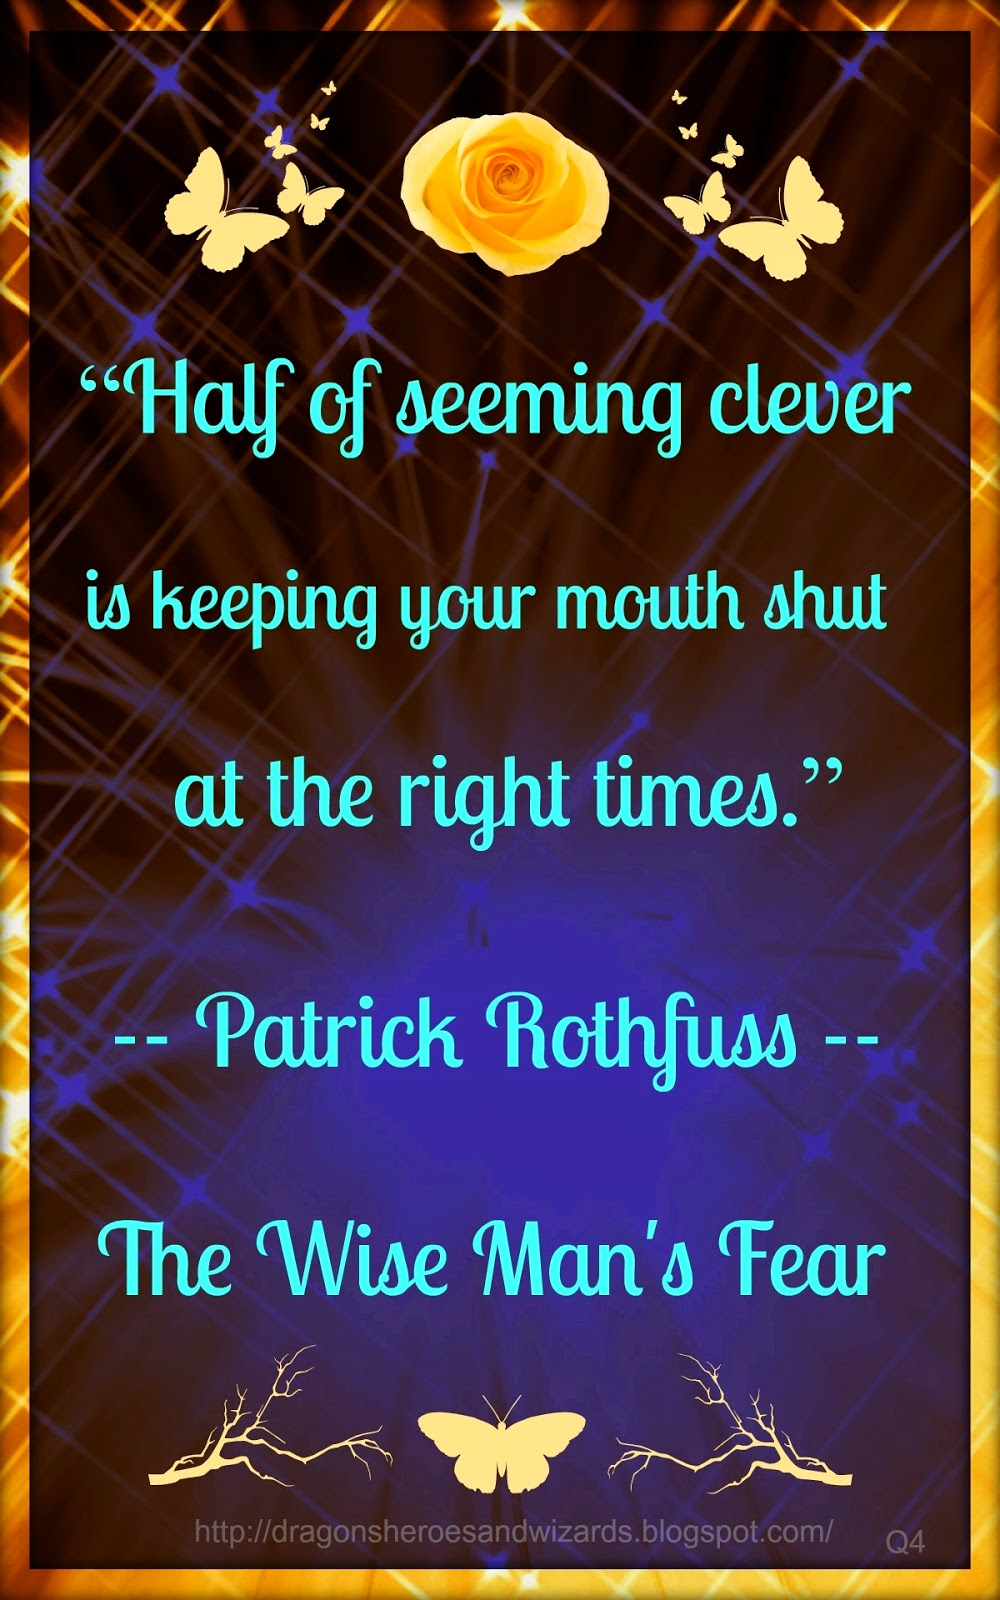 Poster Design by Mulluane~ Book Quote by Patrick Rothfuss, Wise Man's Fear